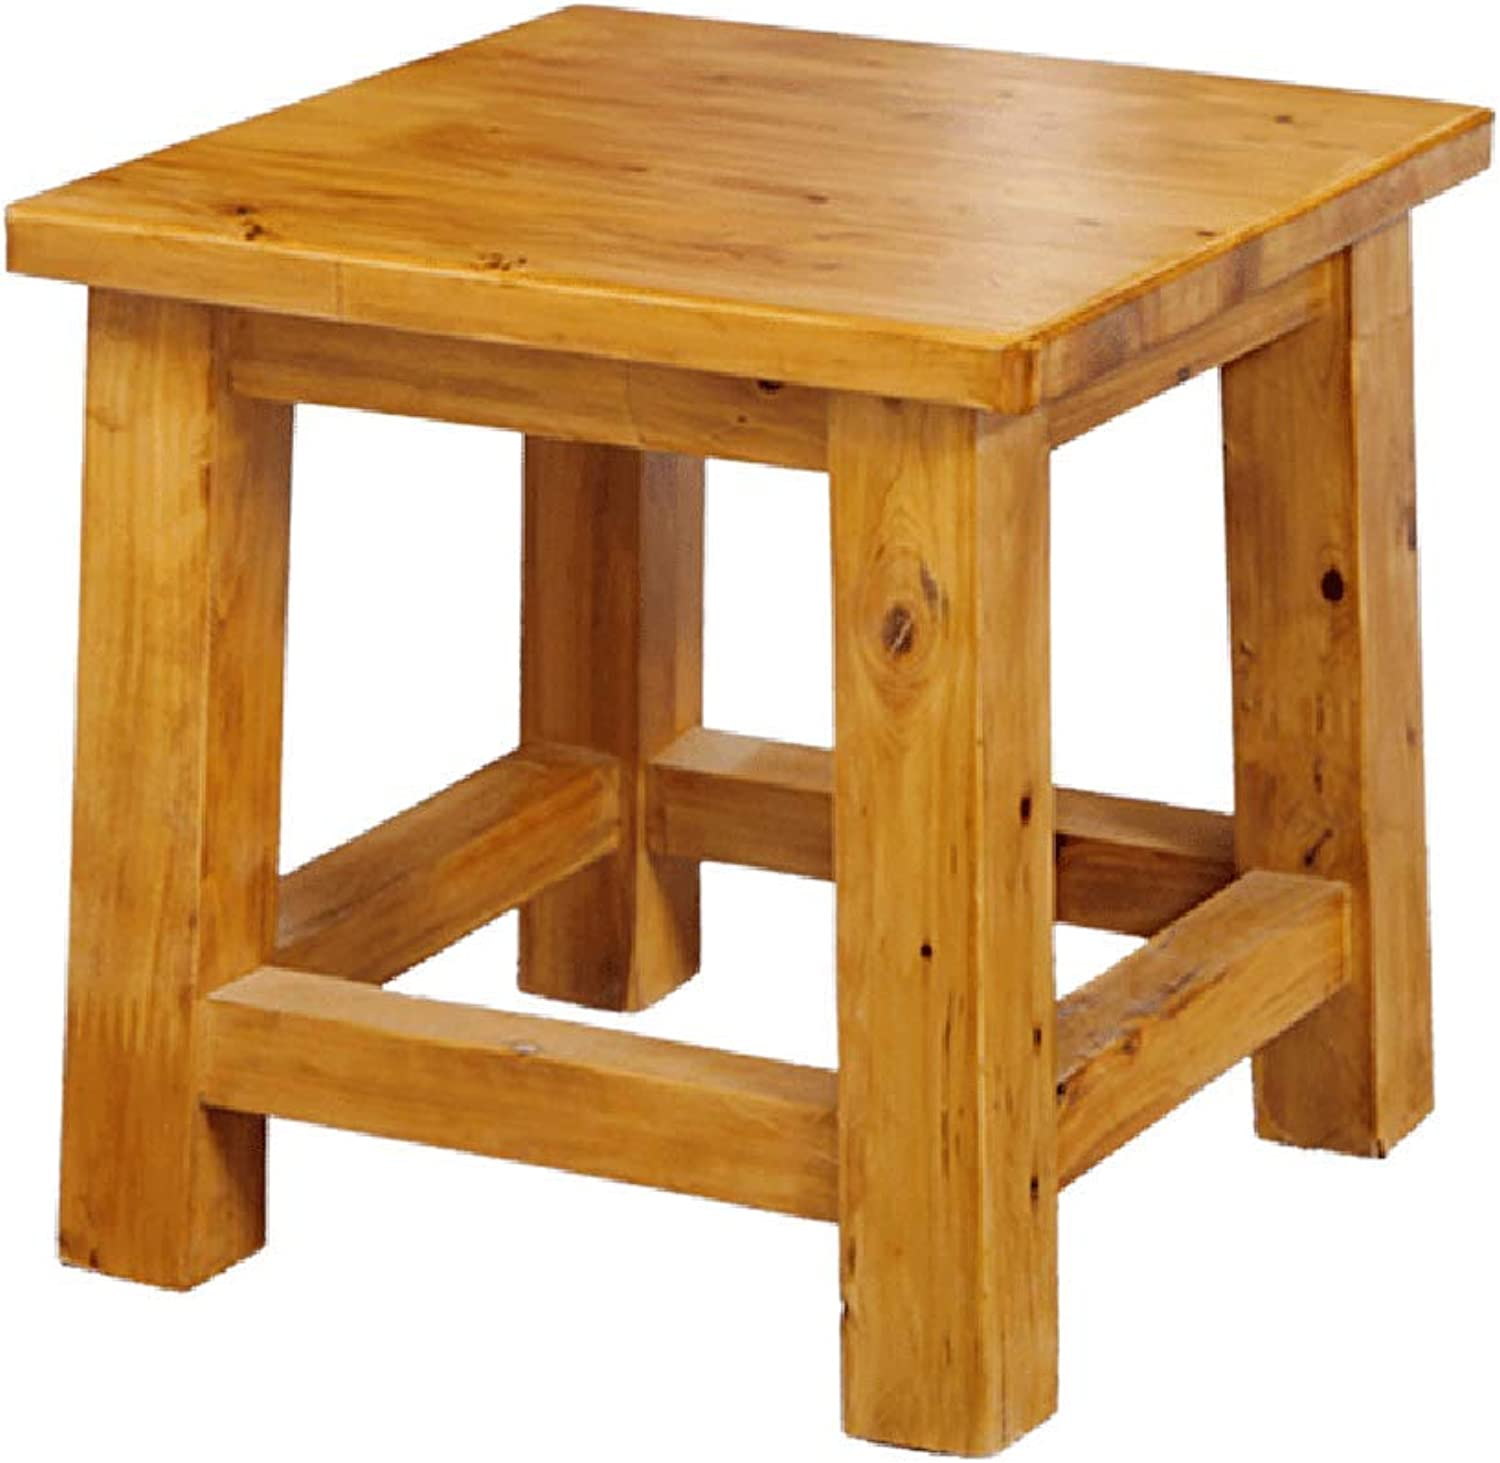 ZHANGQIANG Roll Over Image to Zoom in Premier Housewares Rubberwood Round Stool (color   Wood color, Size   25  25  25)